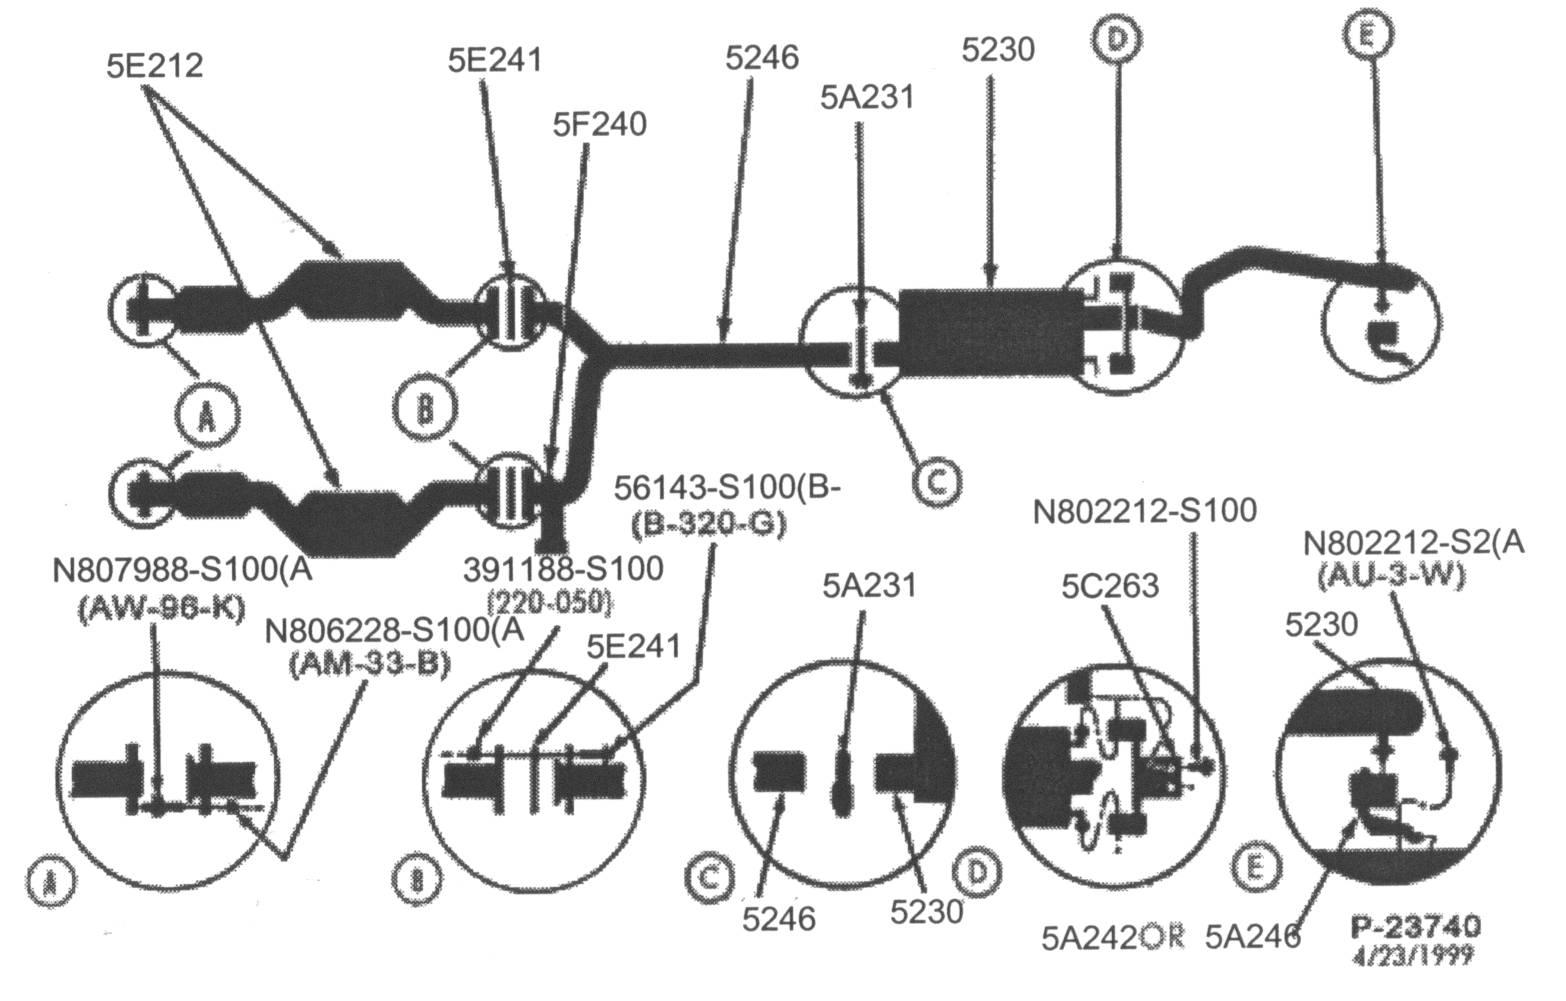 1972 C10 Wiring Diagram in addition P 0900c15280250d35 moreover Viewtopic furthermore Dodge Stereo Wiring Diagram 1988 besides T56 Transmission Shifter Relocation. on 96 mustang wiring diagram